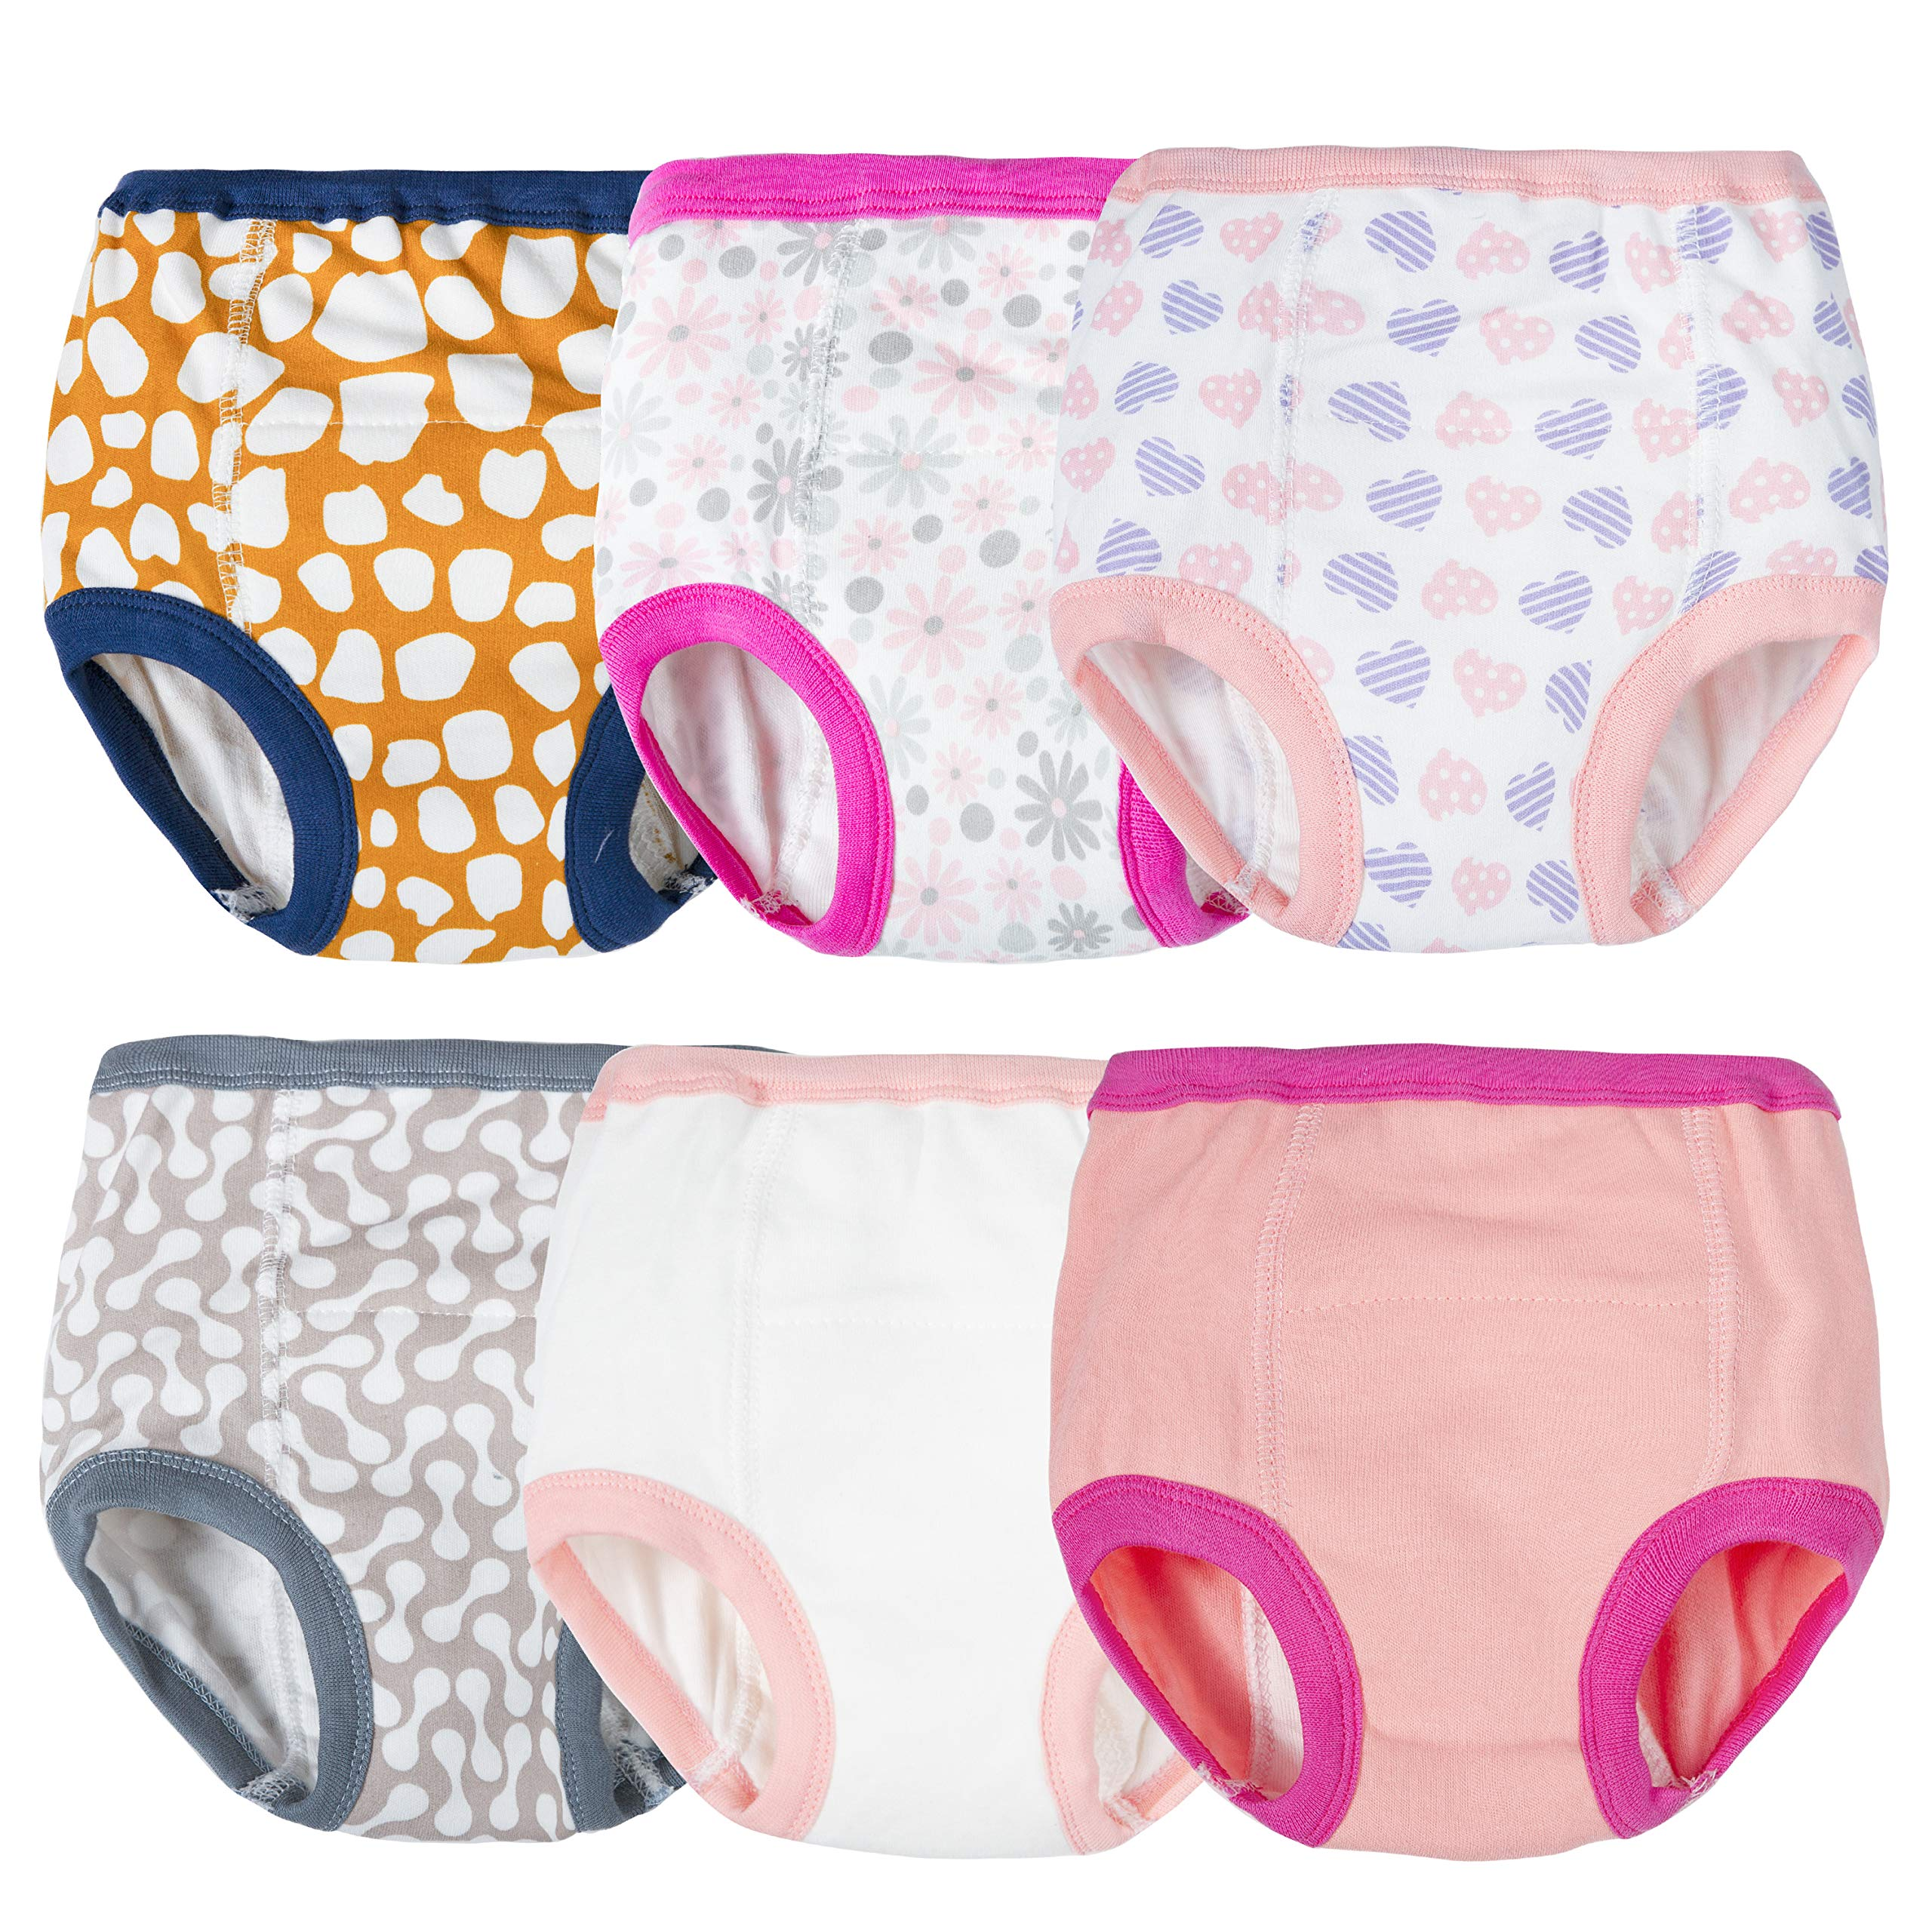 Training Underwear for Girls Potty Training Underwear Girls Potty Training Pants Toddler Training Pants Girls Training Underwear 2t-3t Toddler Training Underwear Toddler Potty Training Underwear